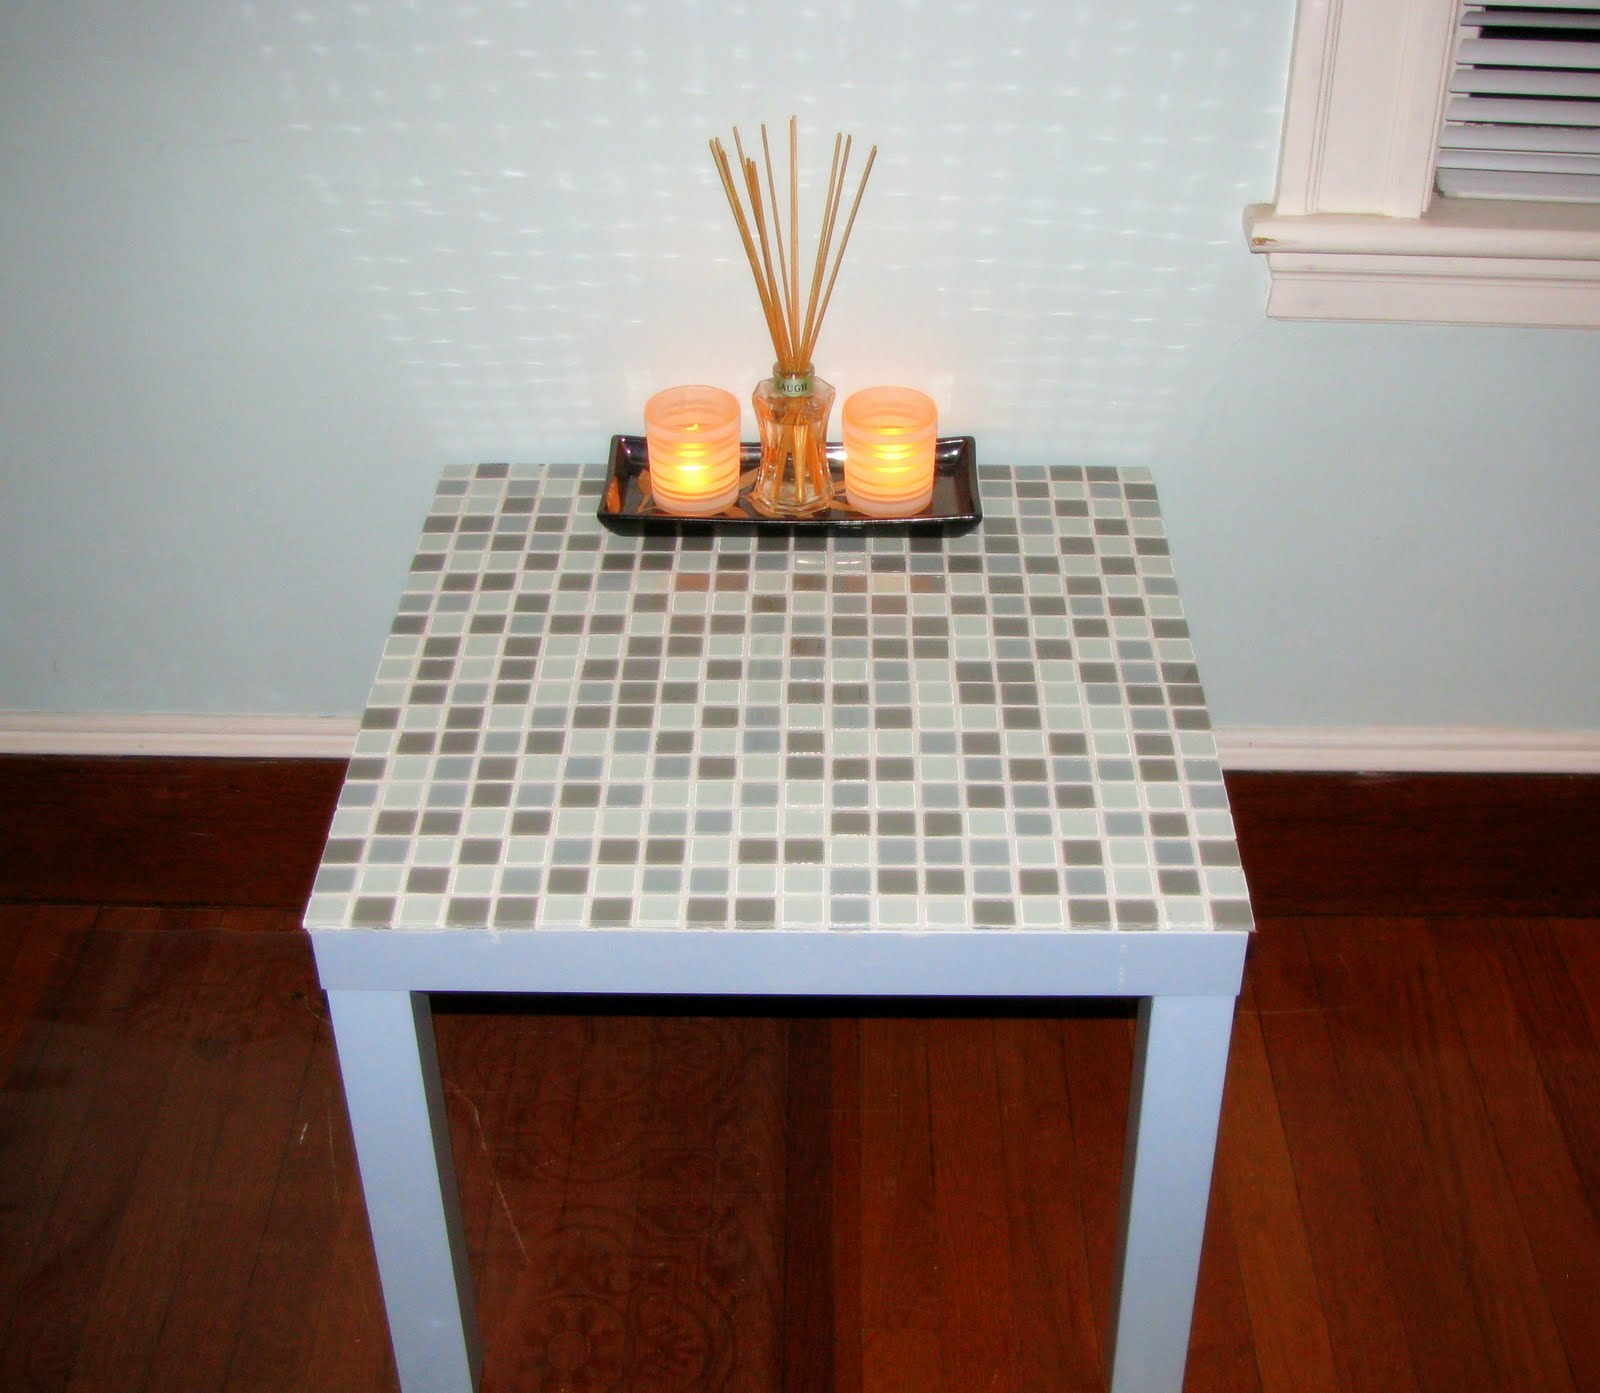 Tiling a Lack Side Table IKEA Hackers IKEA Hackers